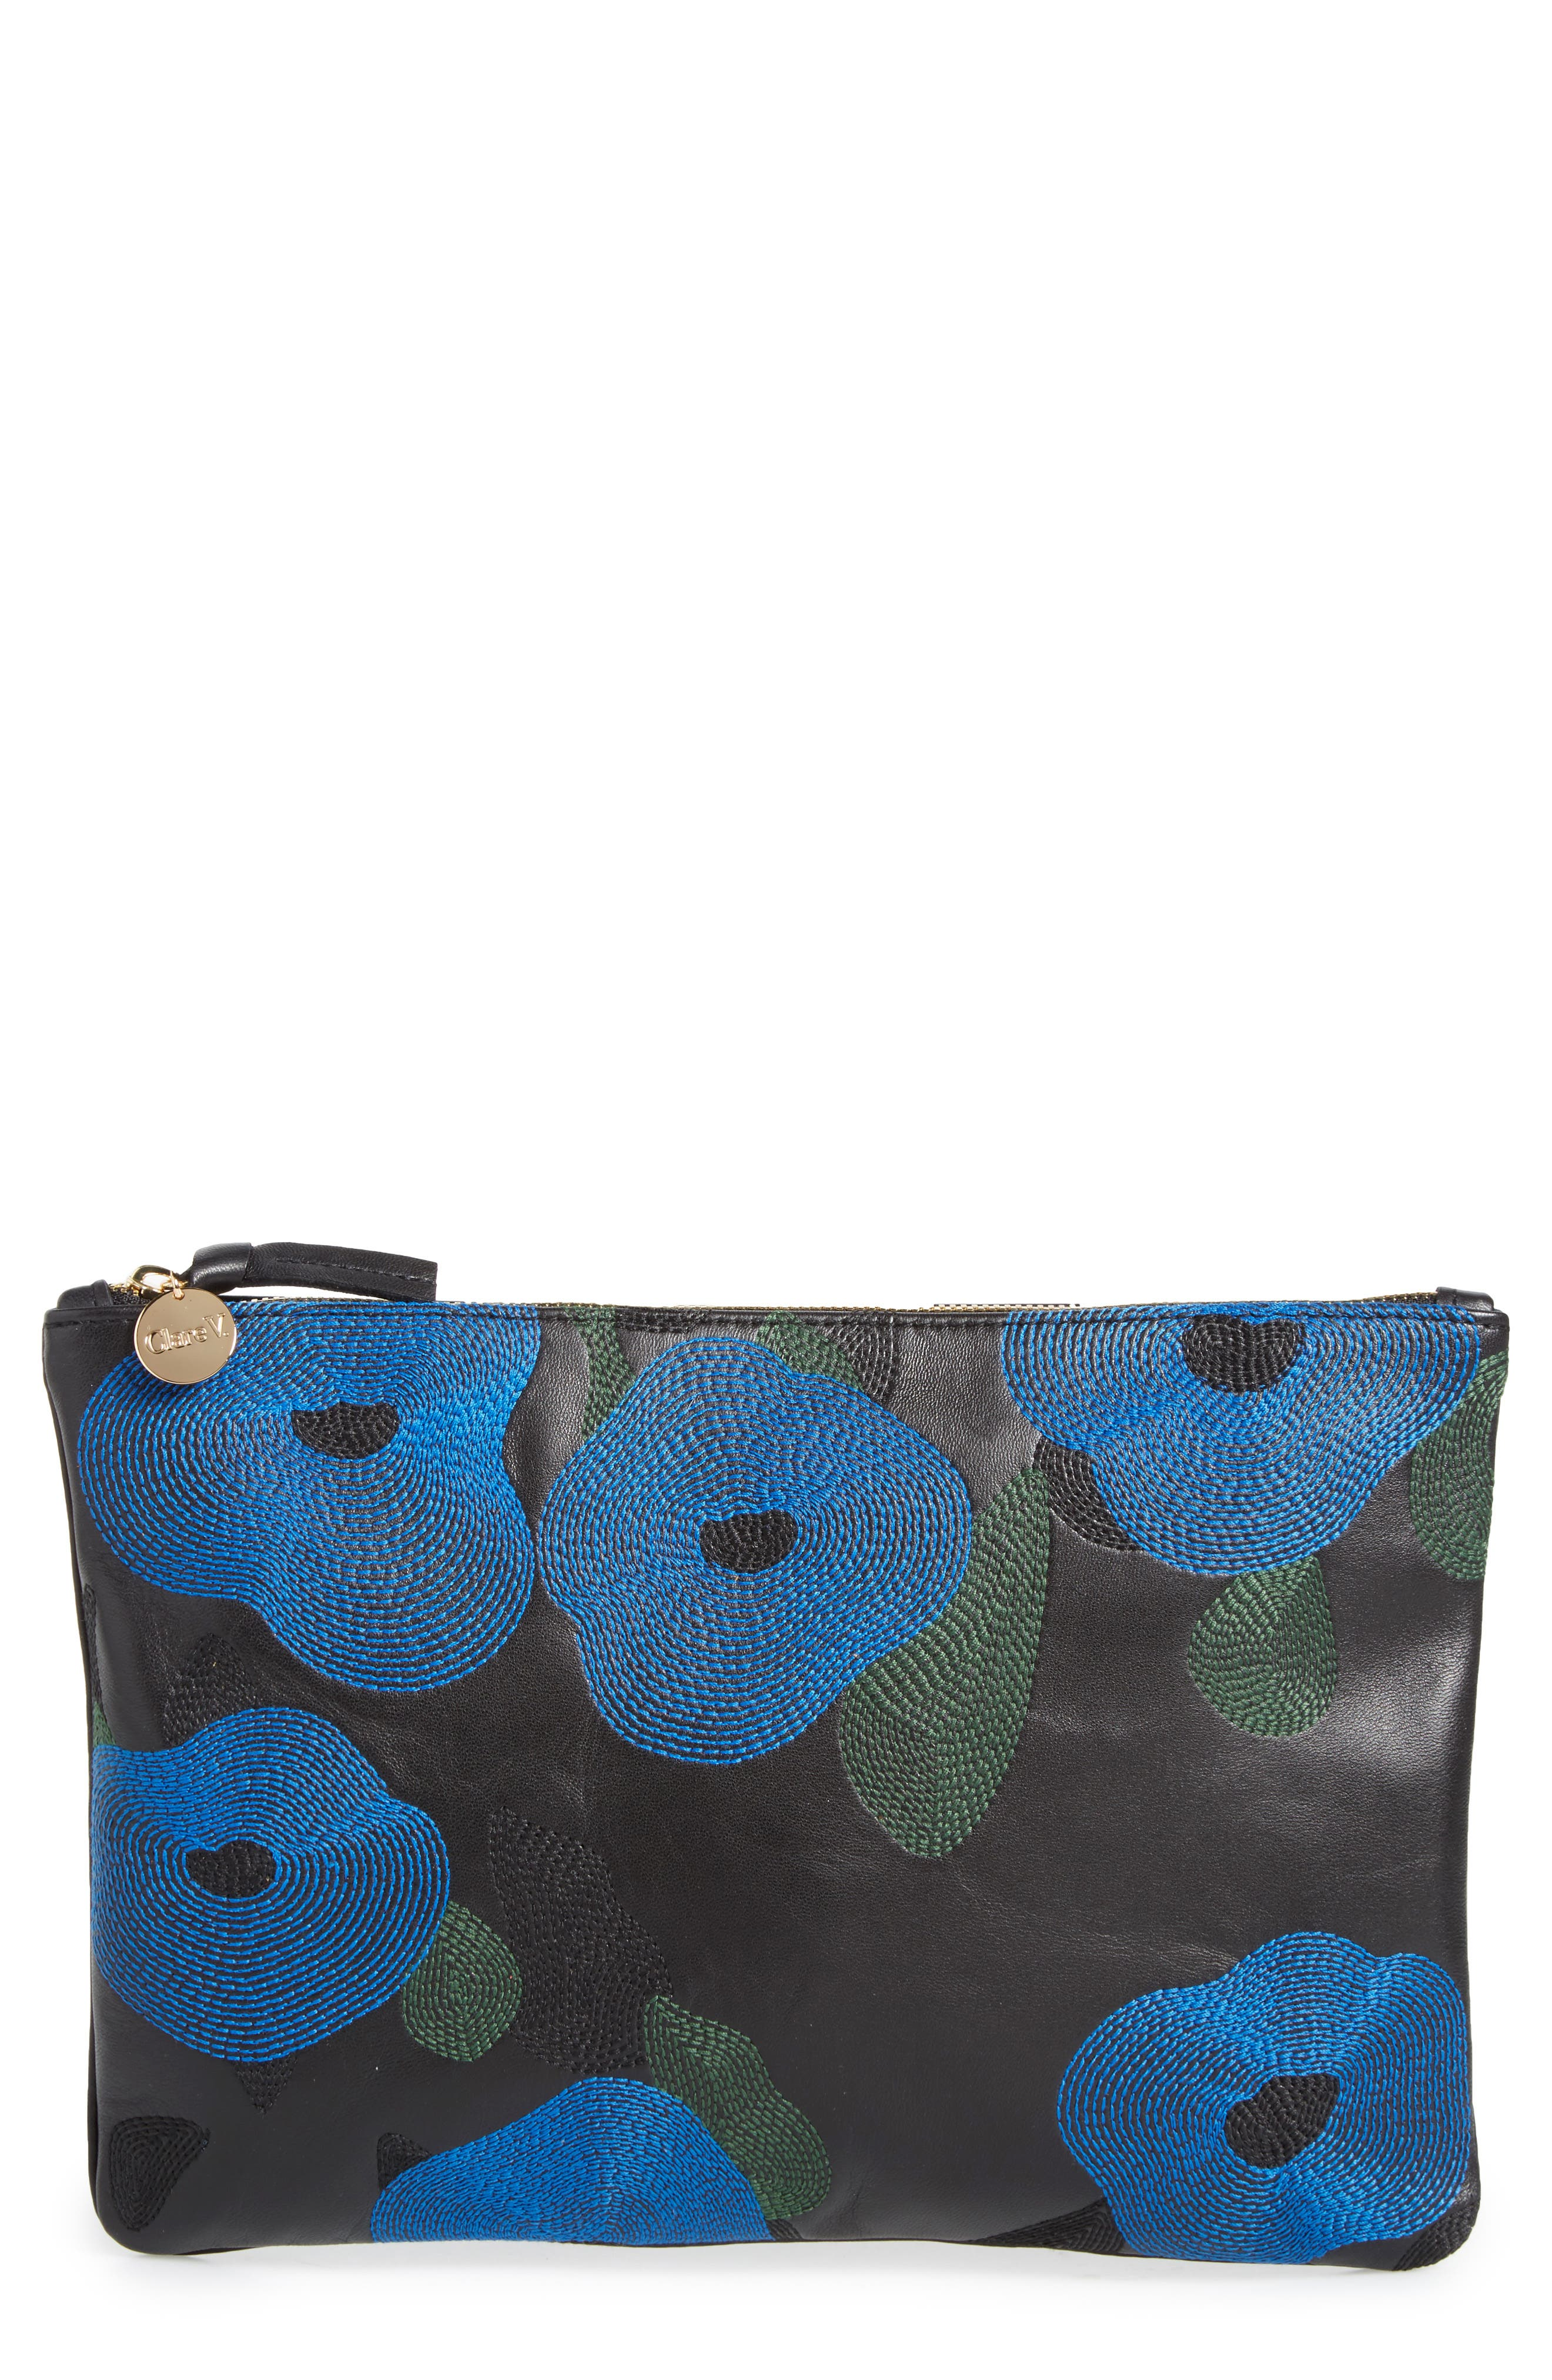 Clare V. Belle Embroidered Leather Flat Clutch